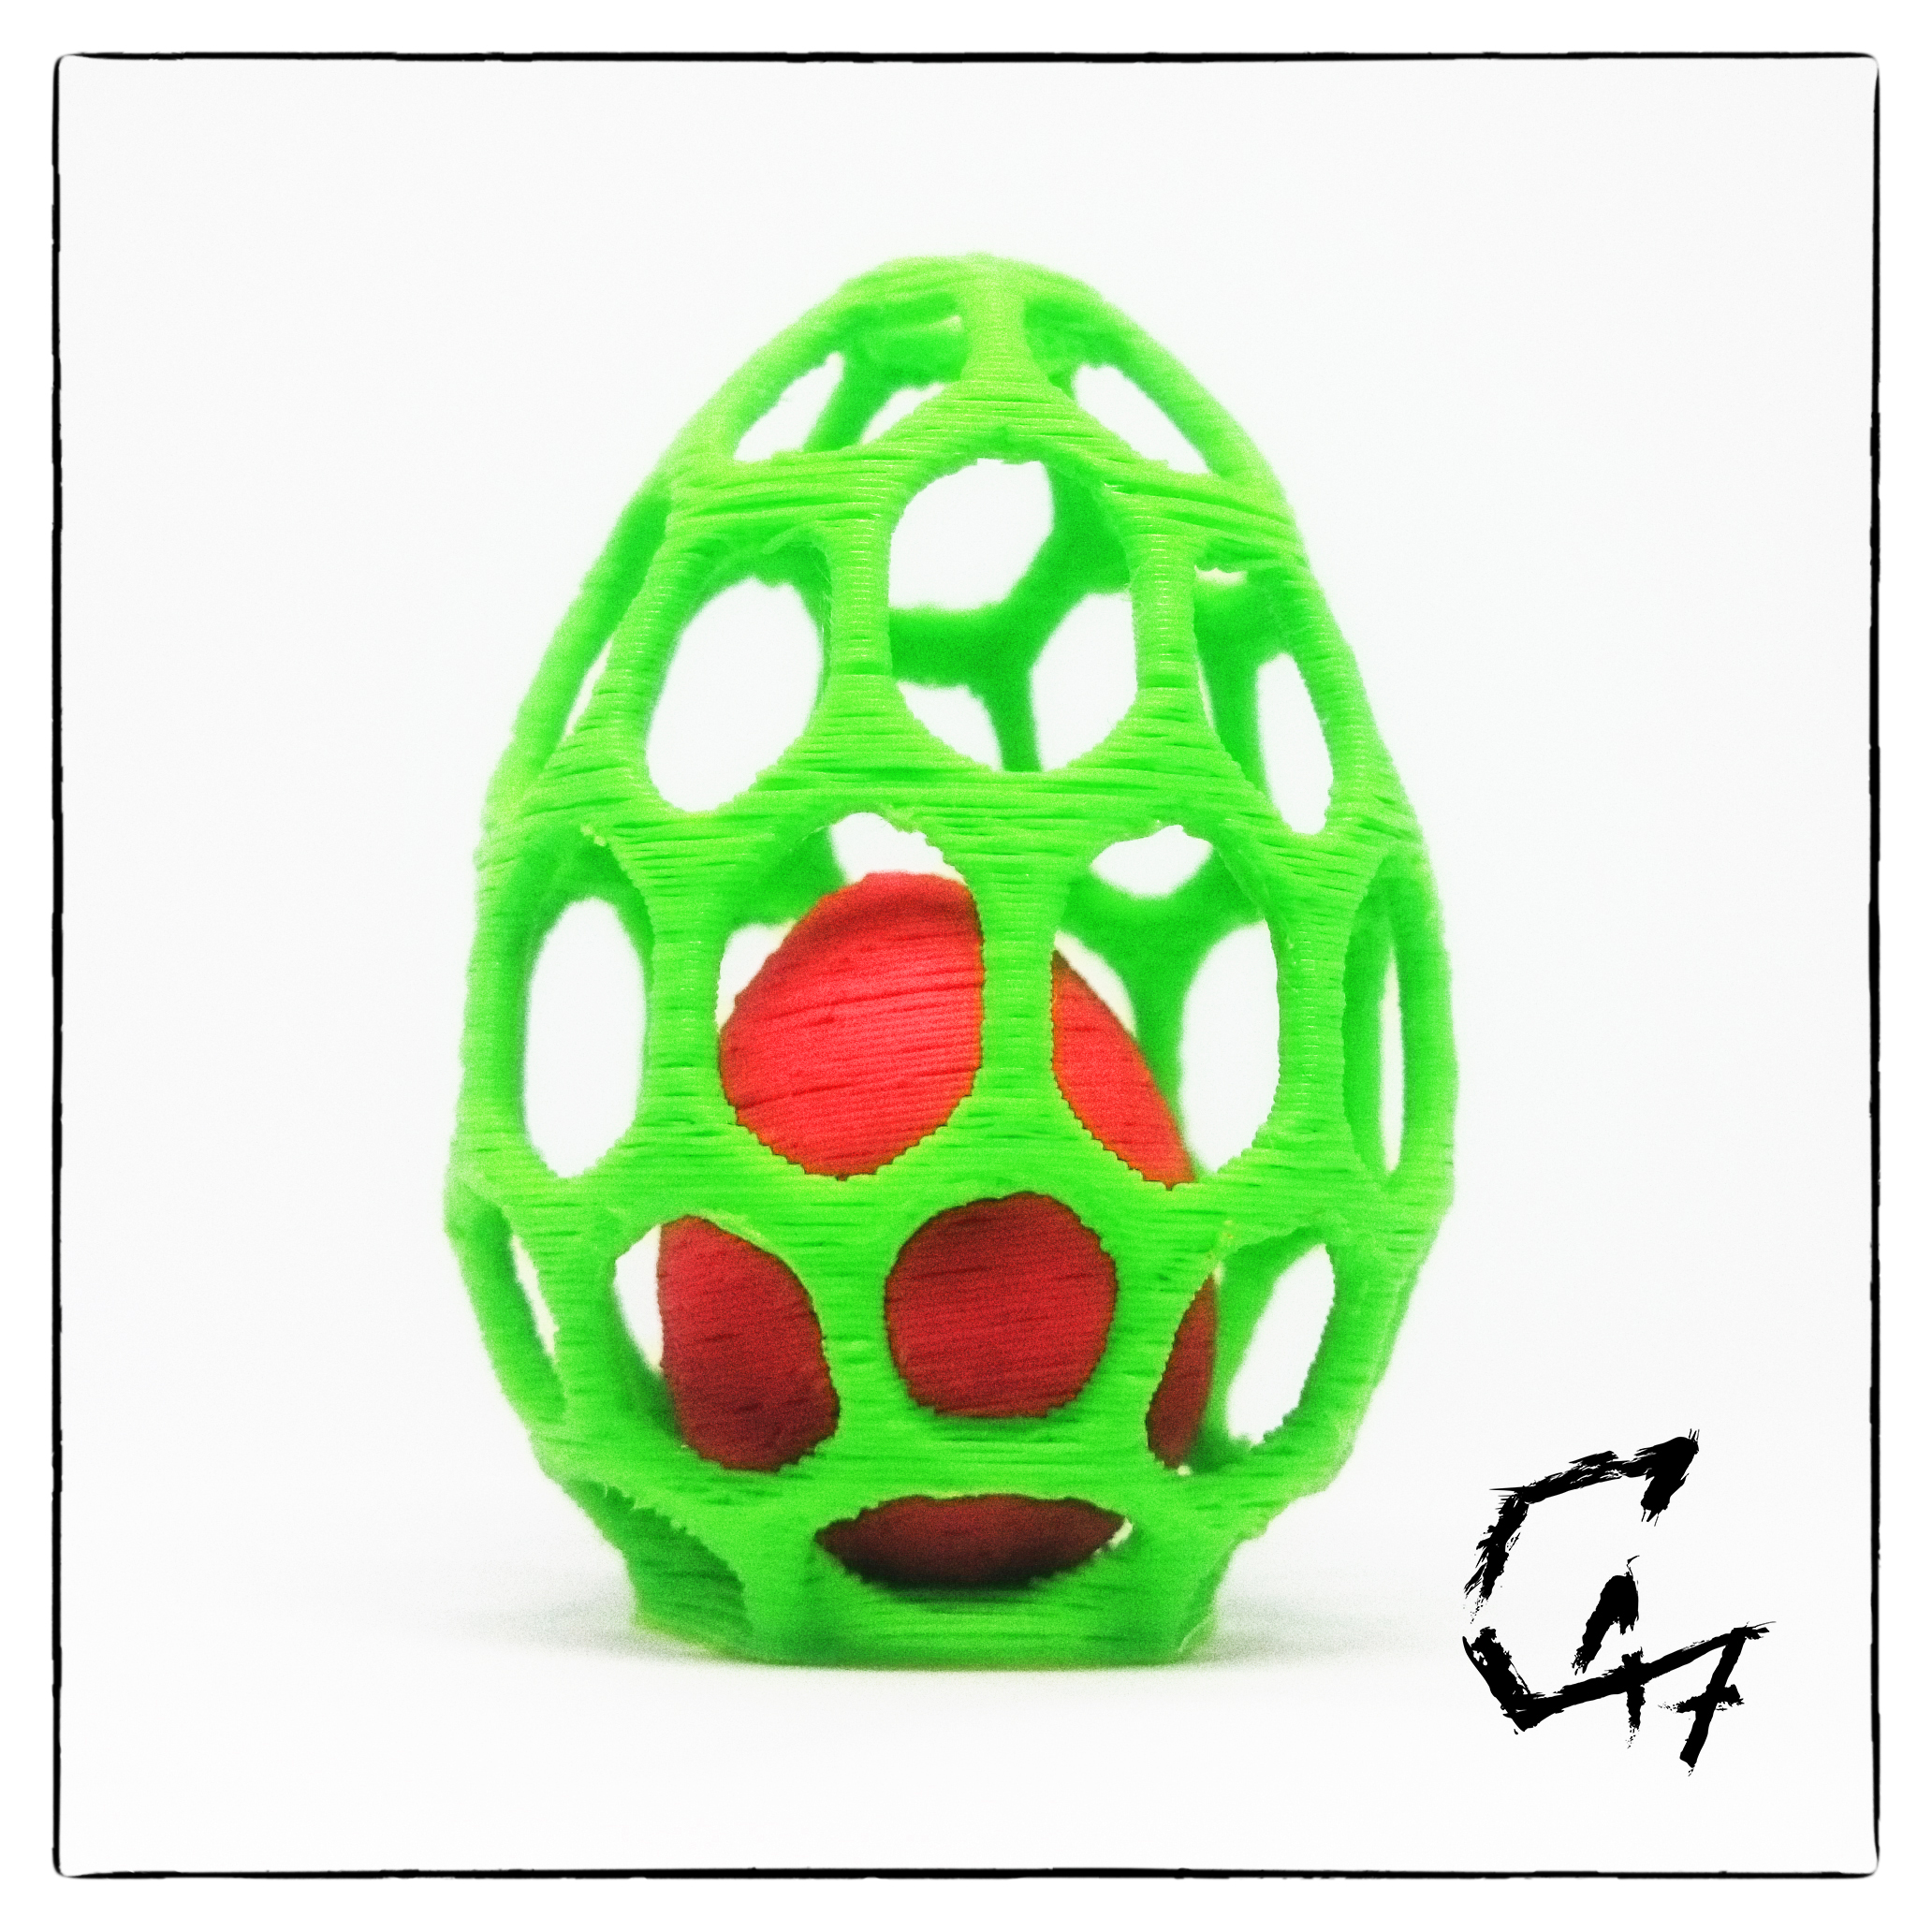 DSC_0326.JPG Download free STL file Egg in Egg cage - two colors with single extruder • 3D printer template, c47